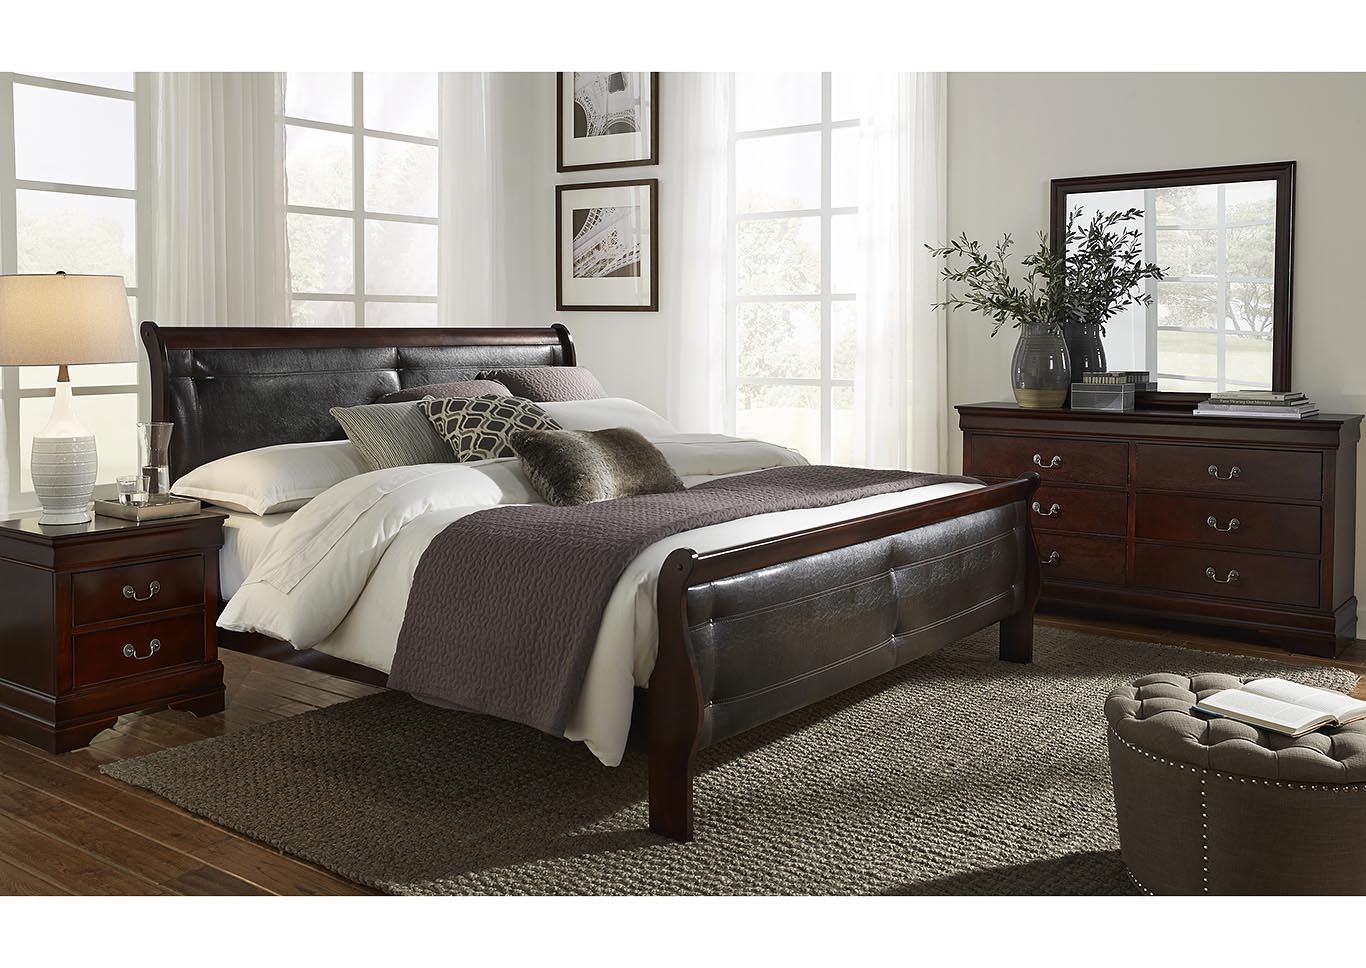 Marley Merlot Queen Upholstery Panel Bed w/Dresser and Mirror,Global Furniture USA